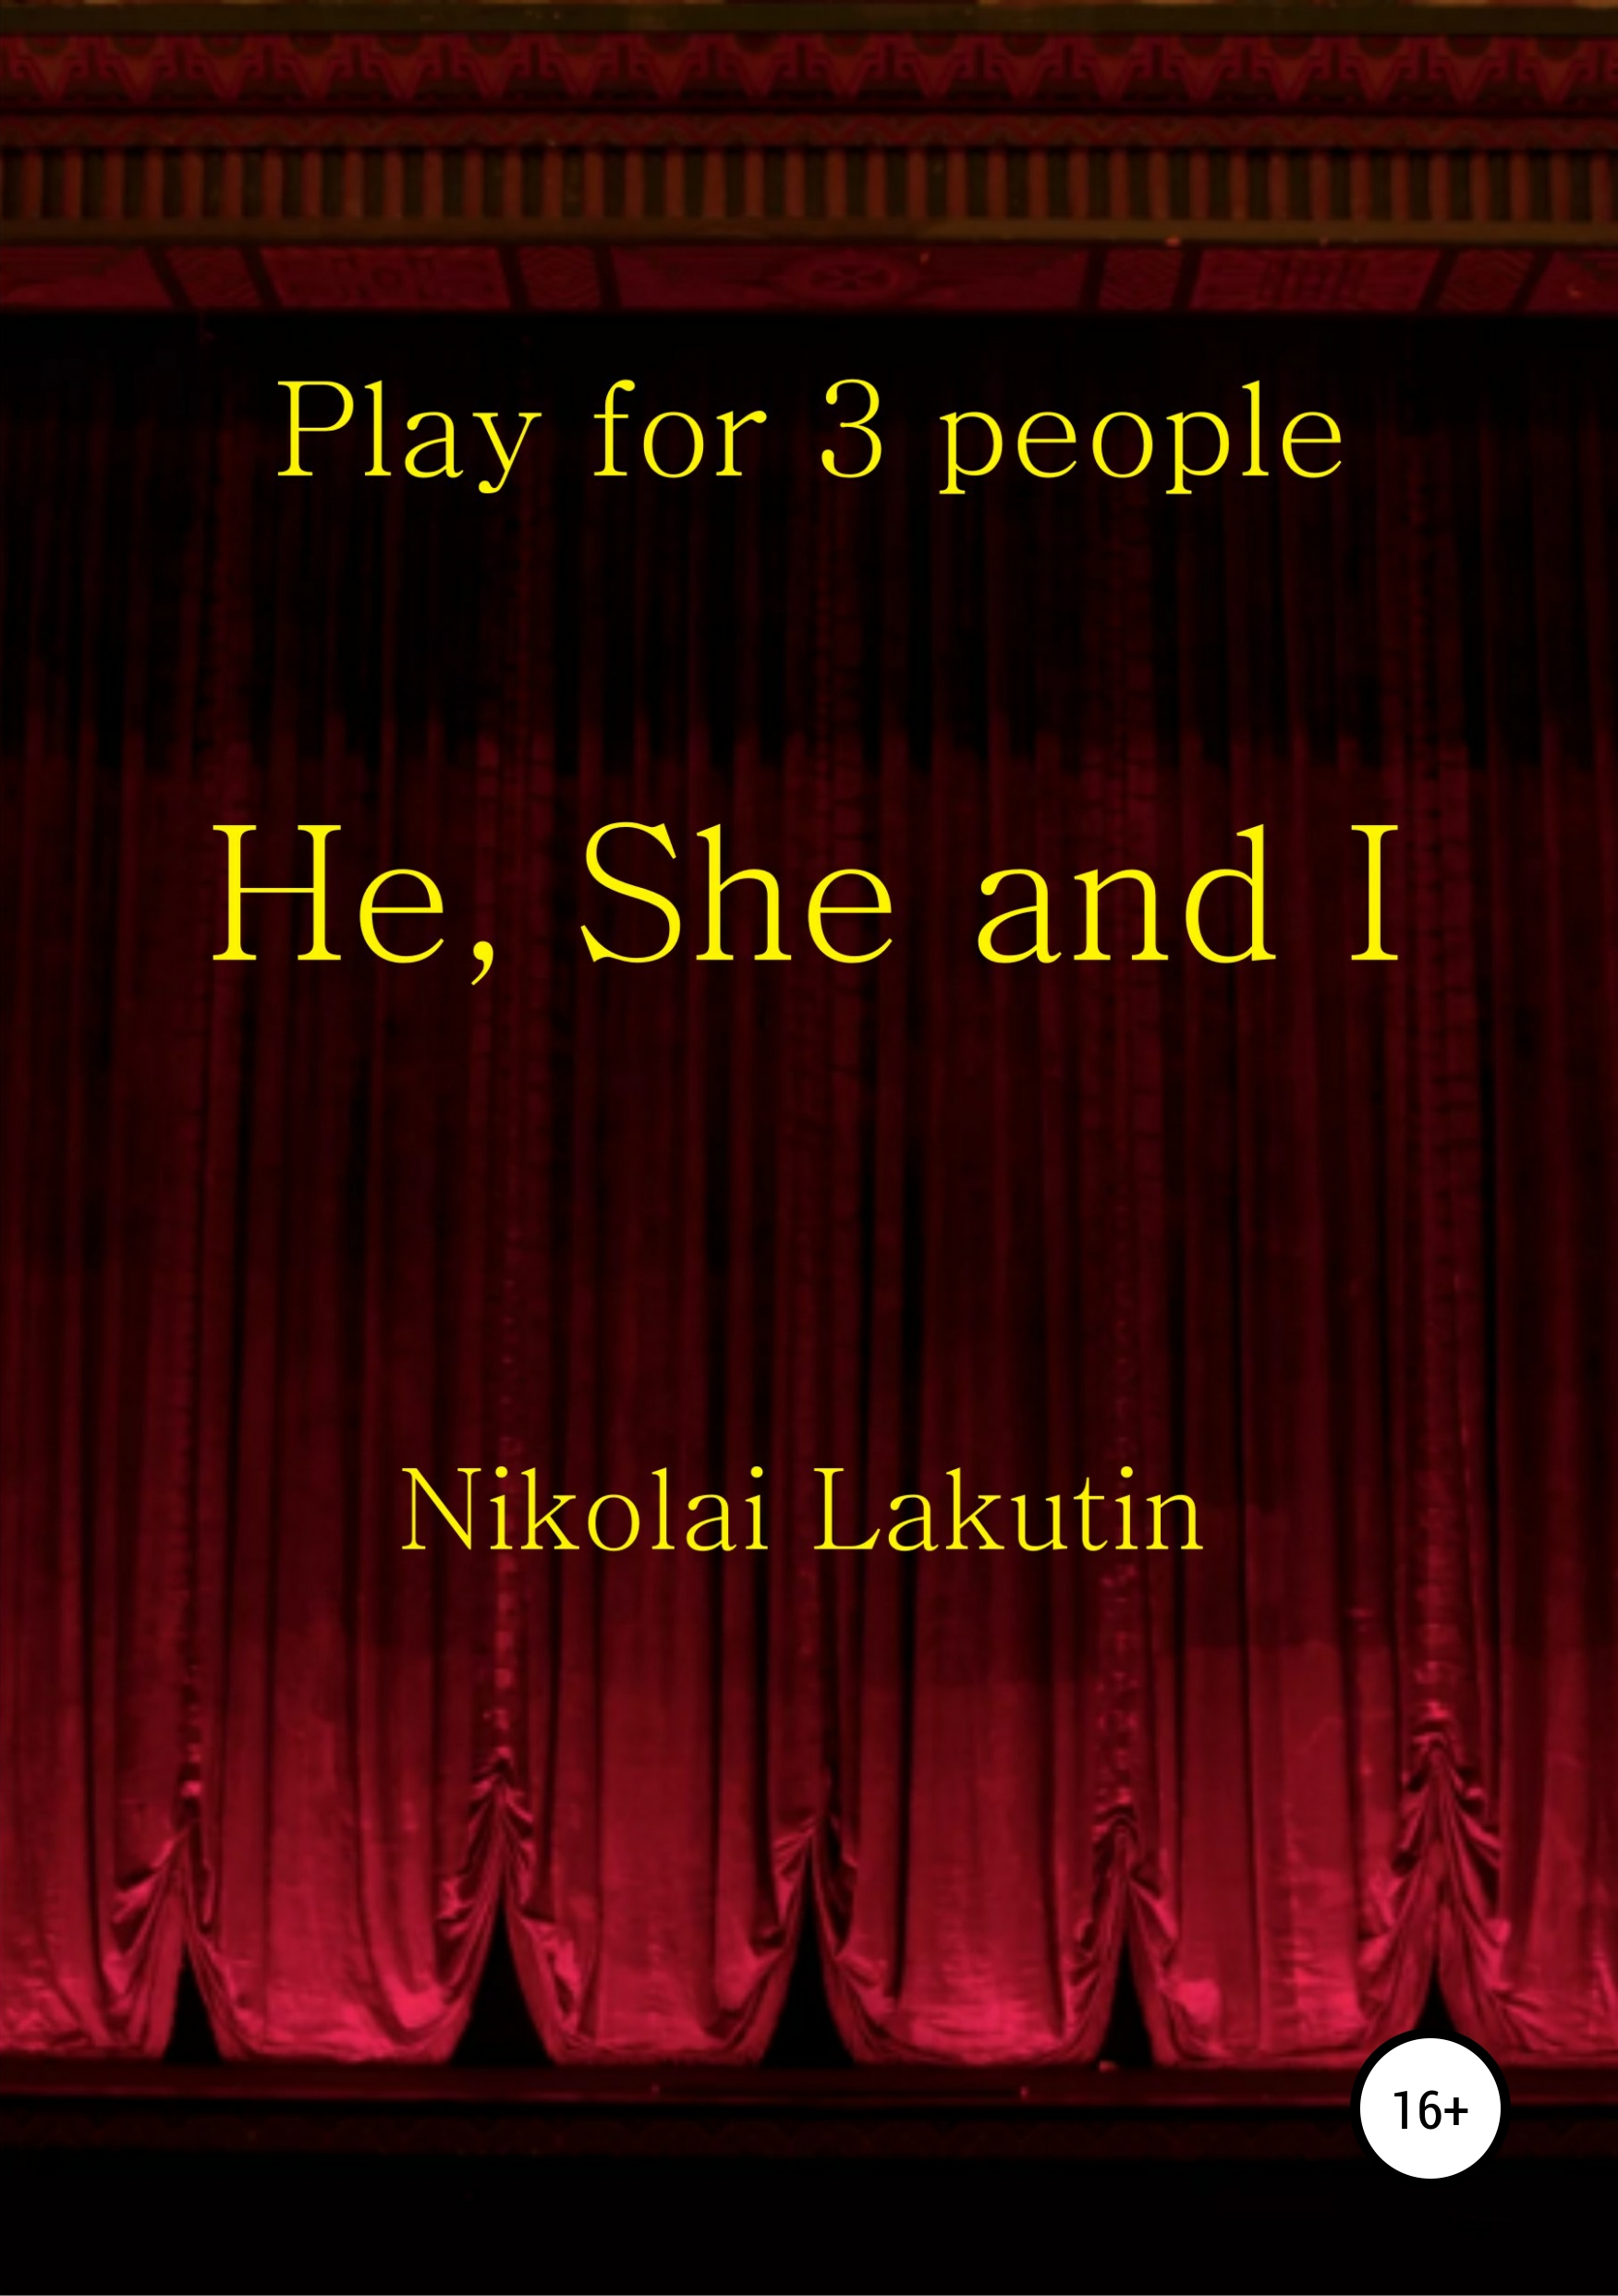 He, She and I. Play for 3 people